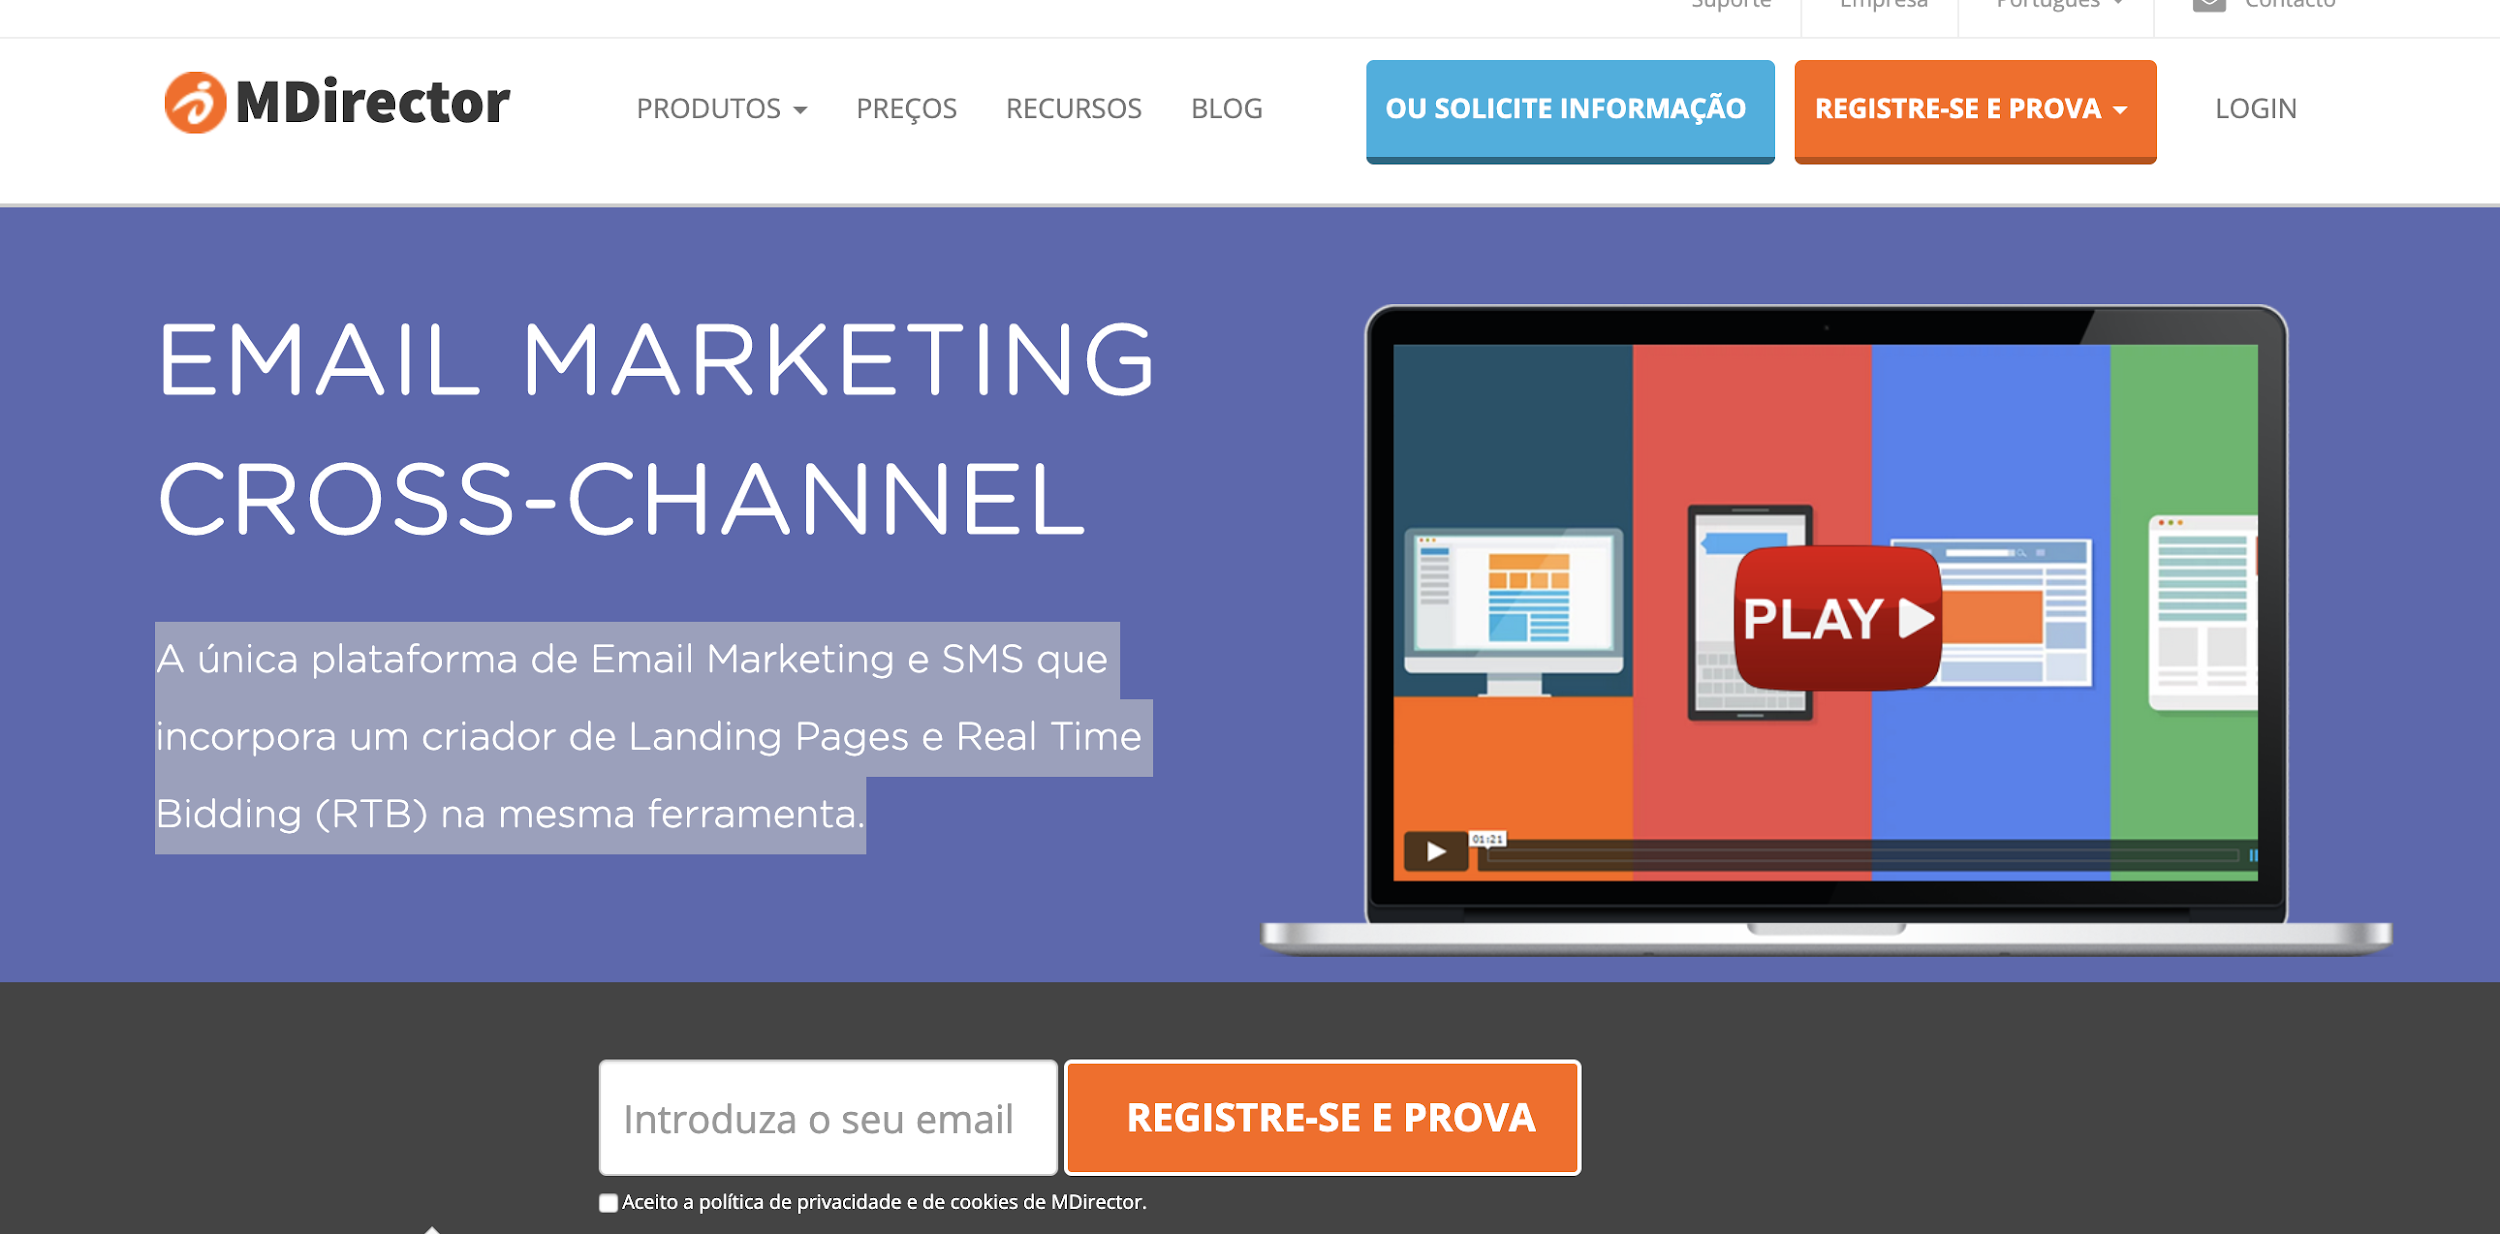 MDirector como exemplo de ferramenta de email marketing